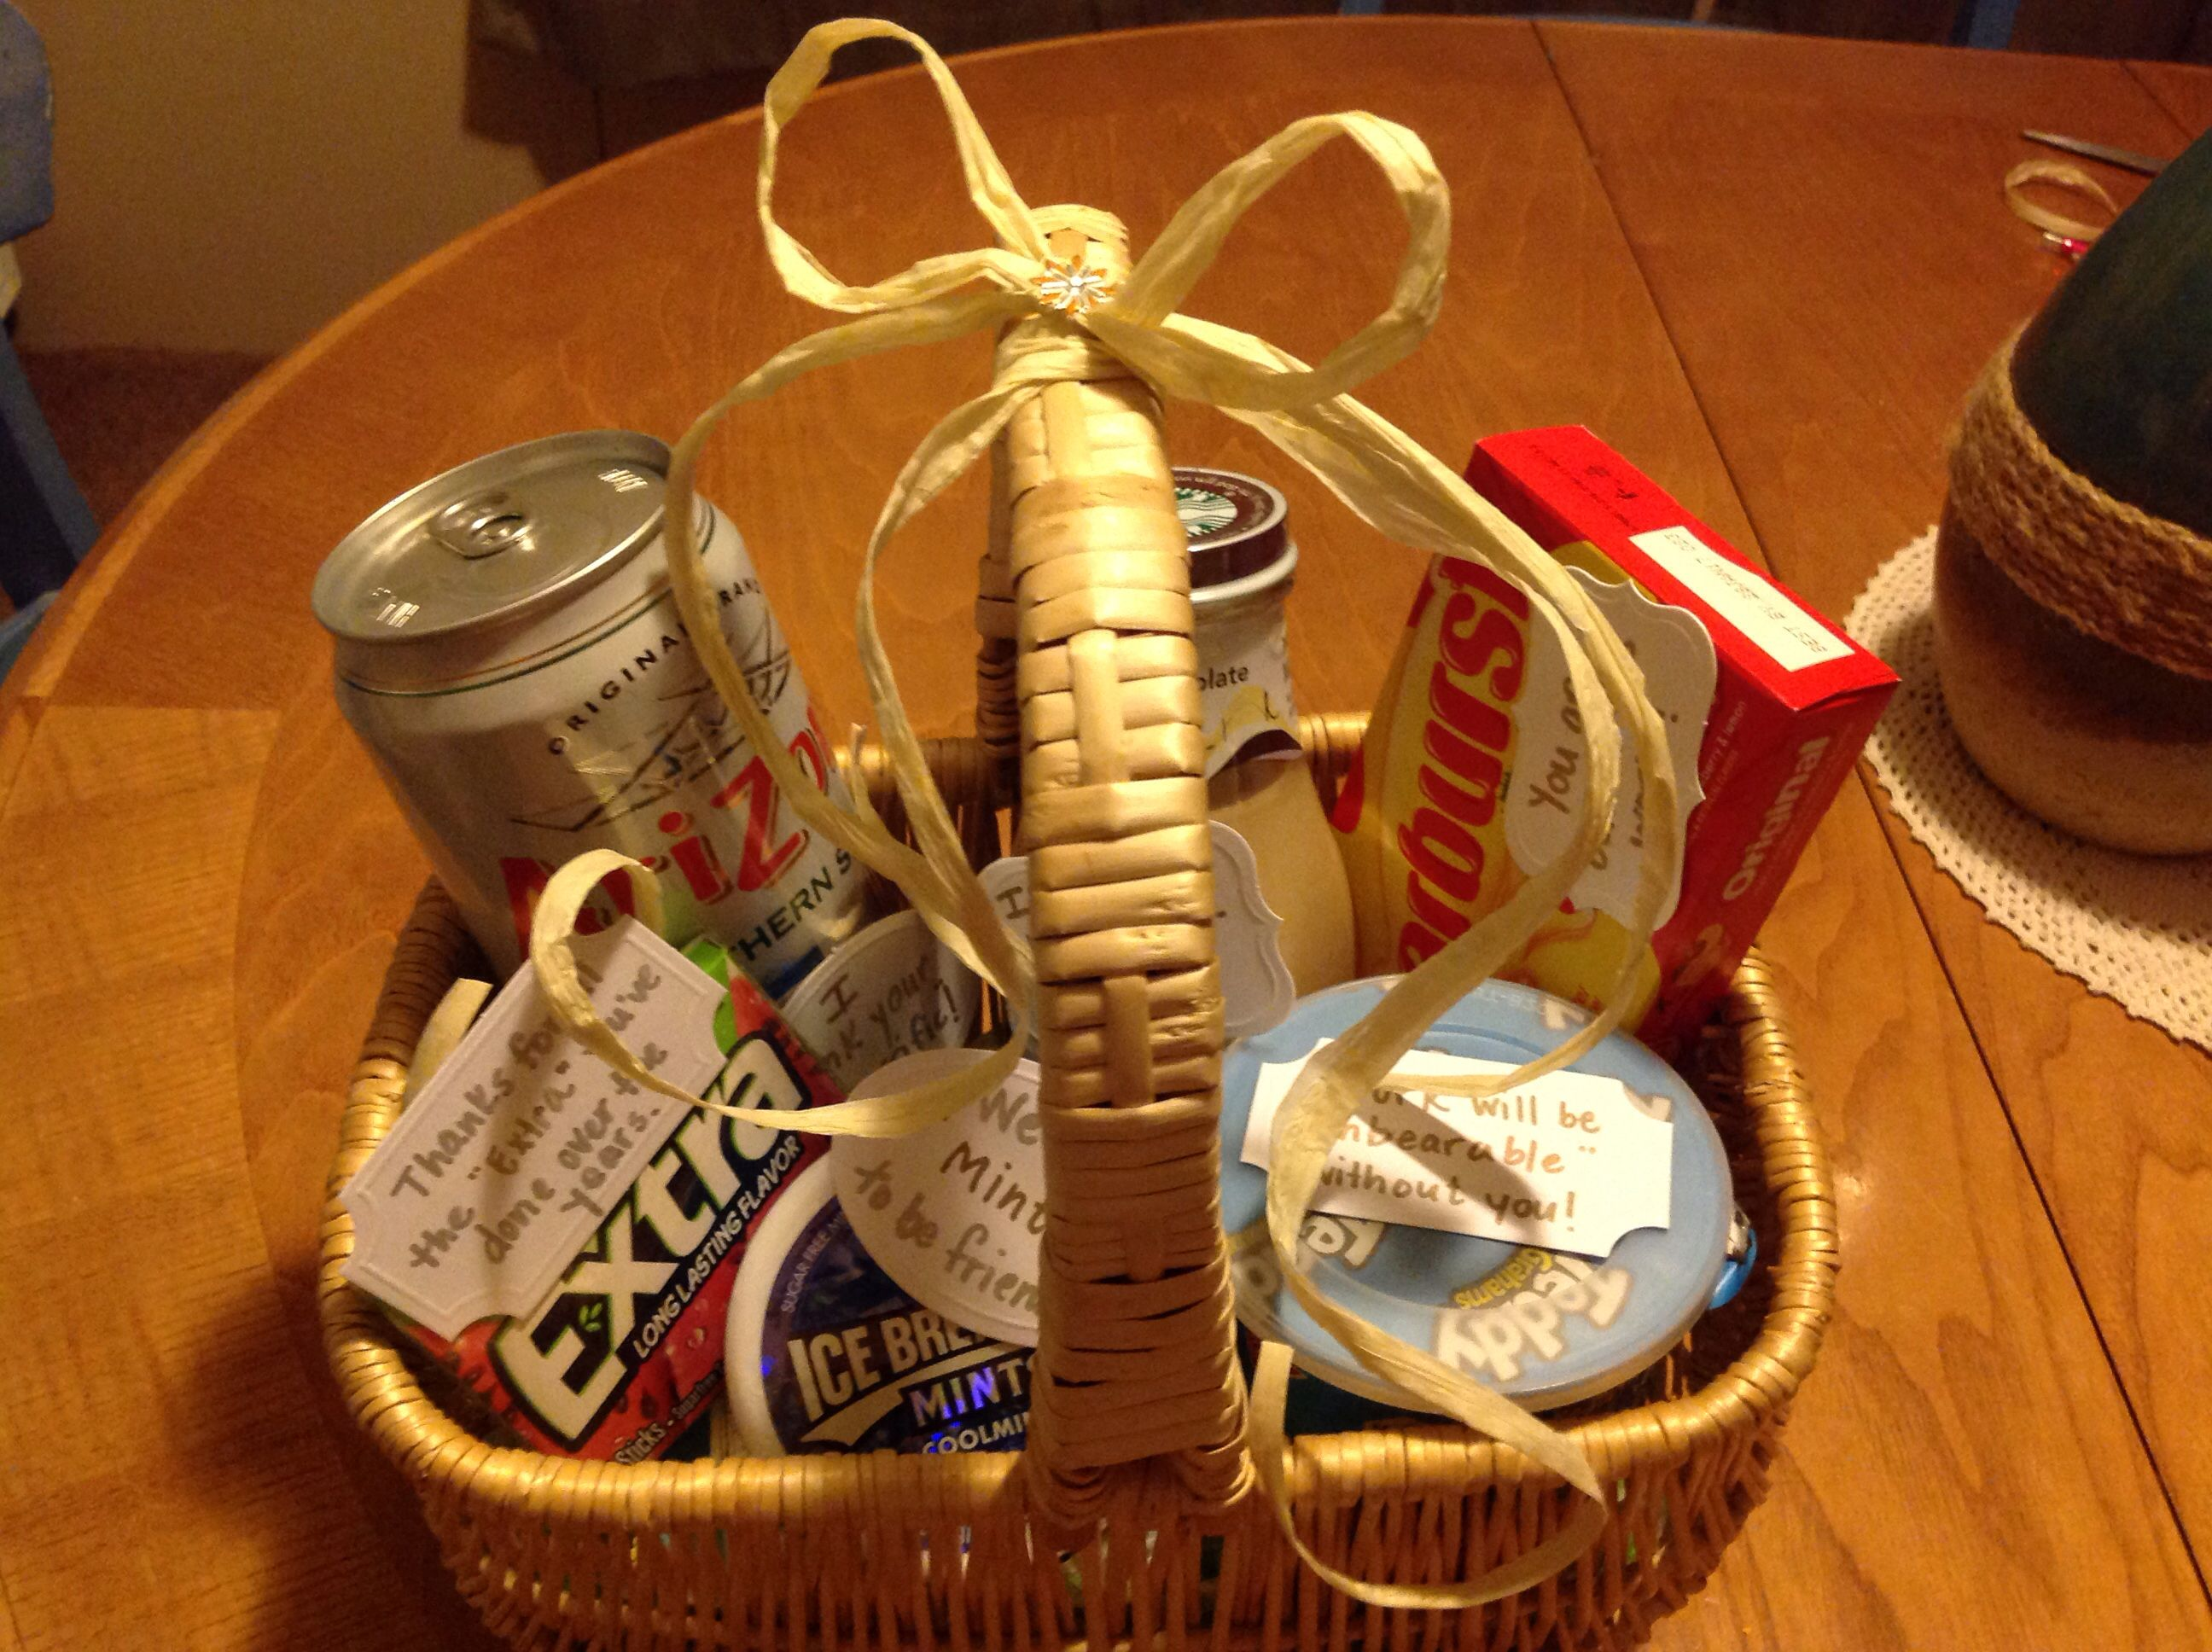 Geburtstagsgeschenk Mutter Diy Going Away Gift Basket For Friend Or Coworker | Employee